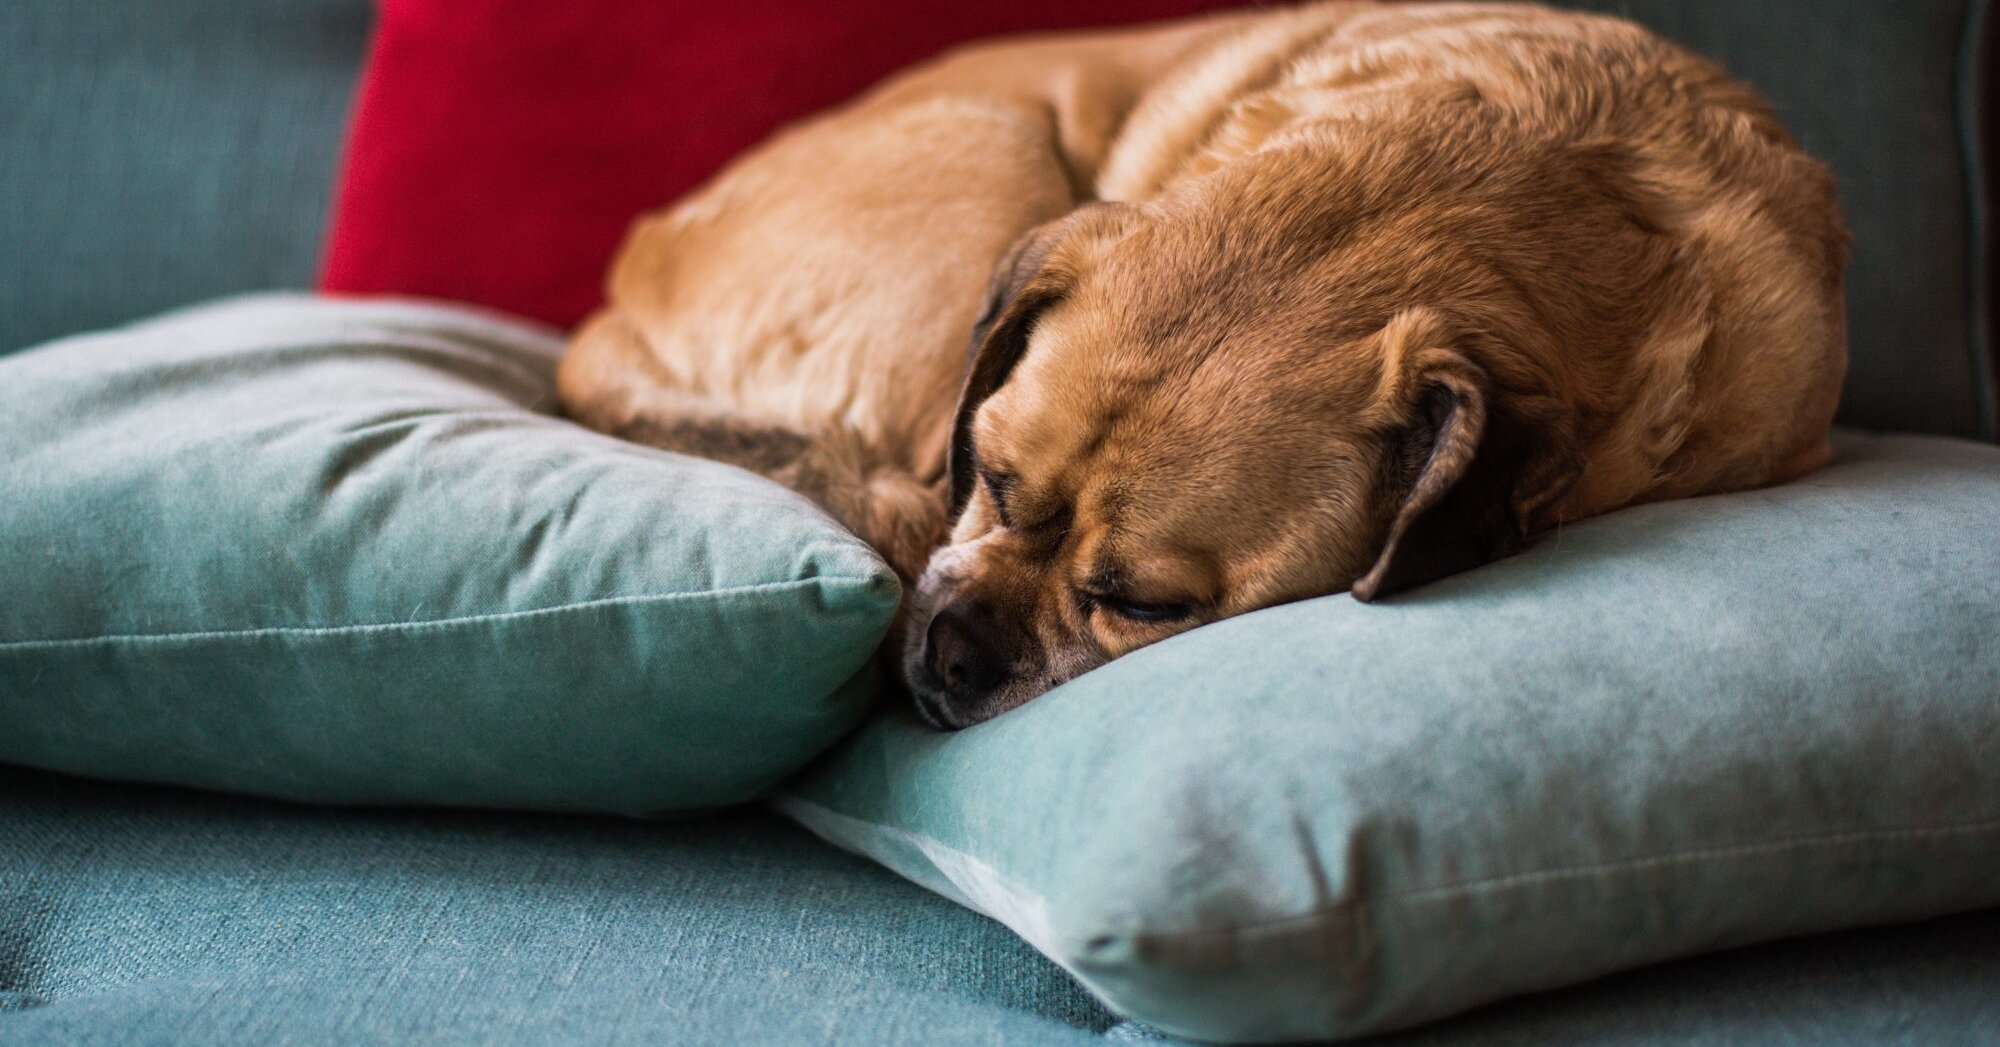 How Can I Help My Dog Re-Adjust to Spending Time Alone?